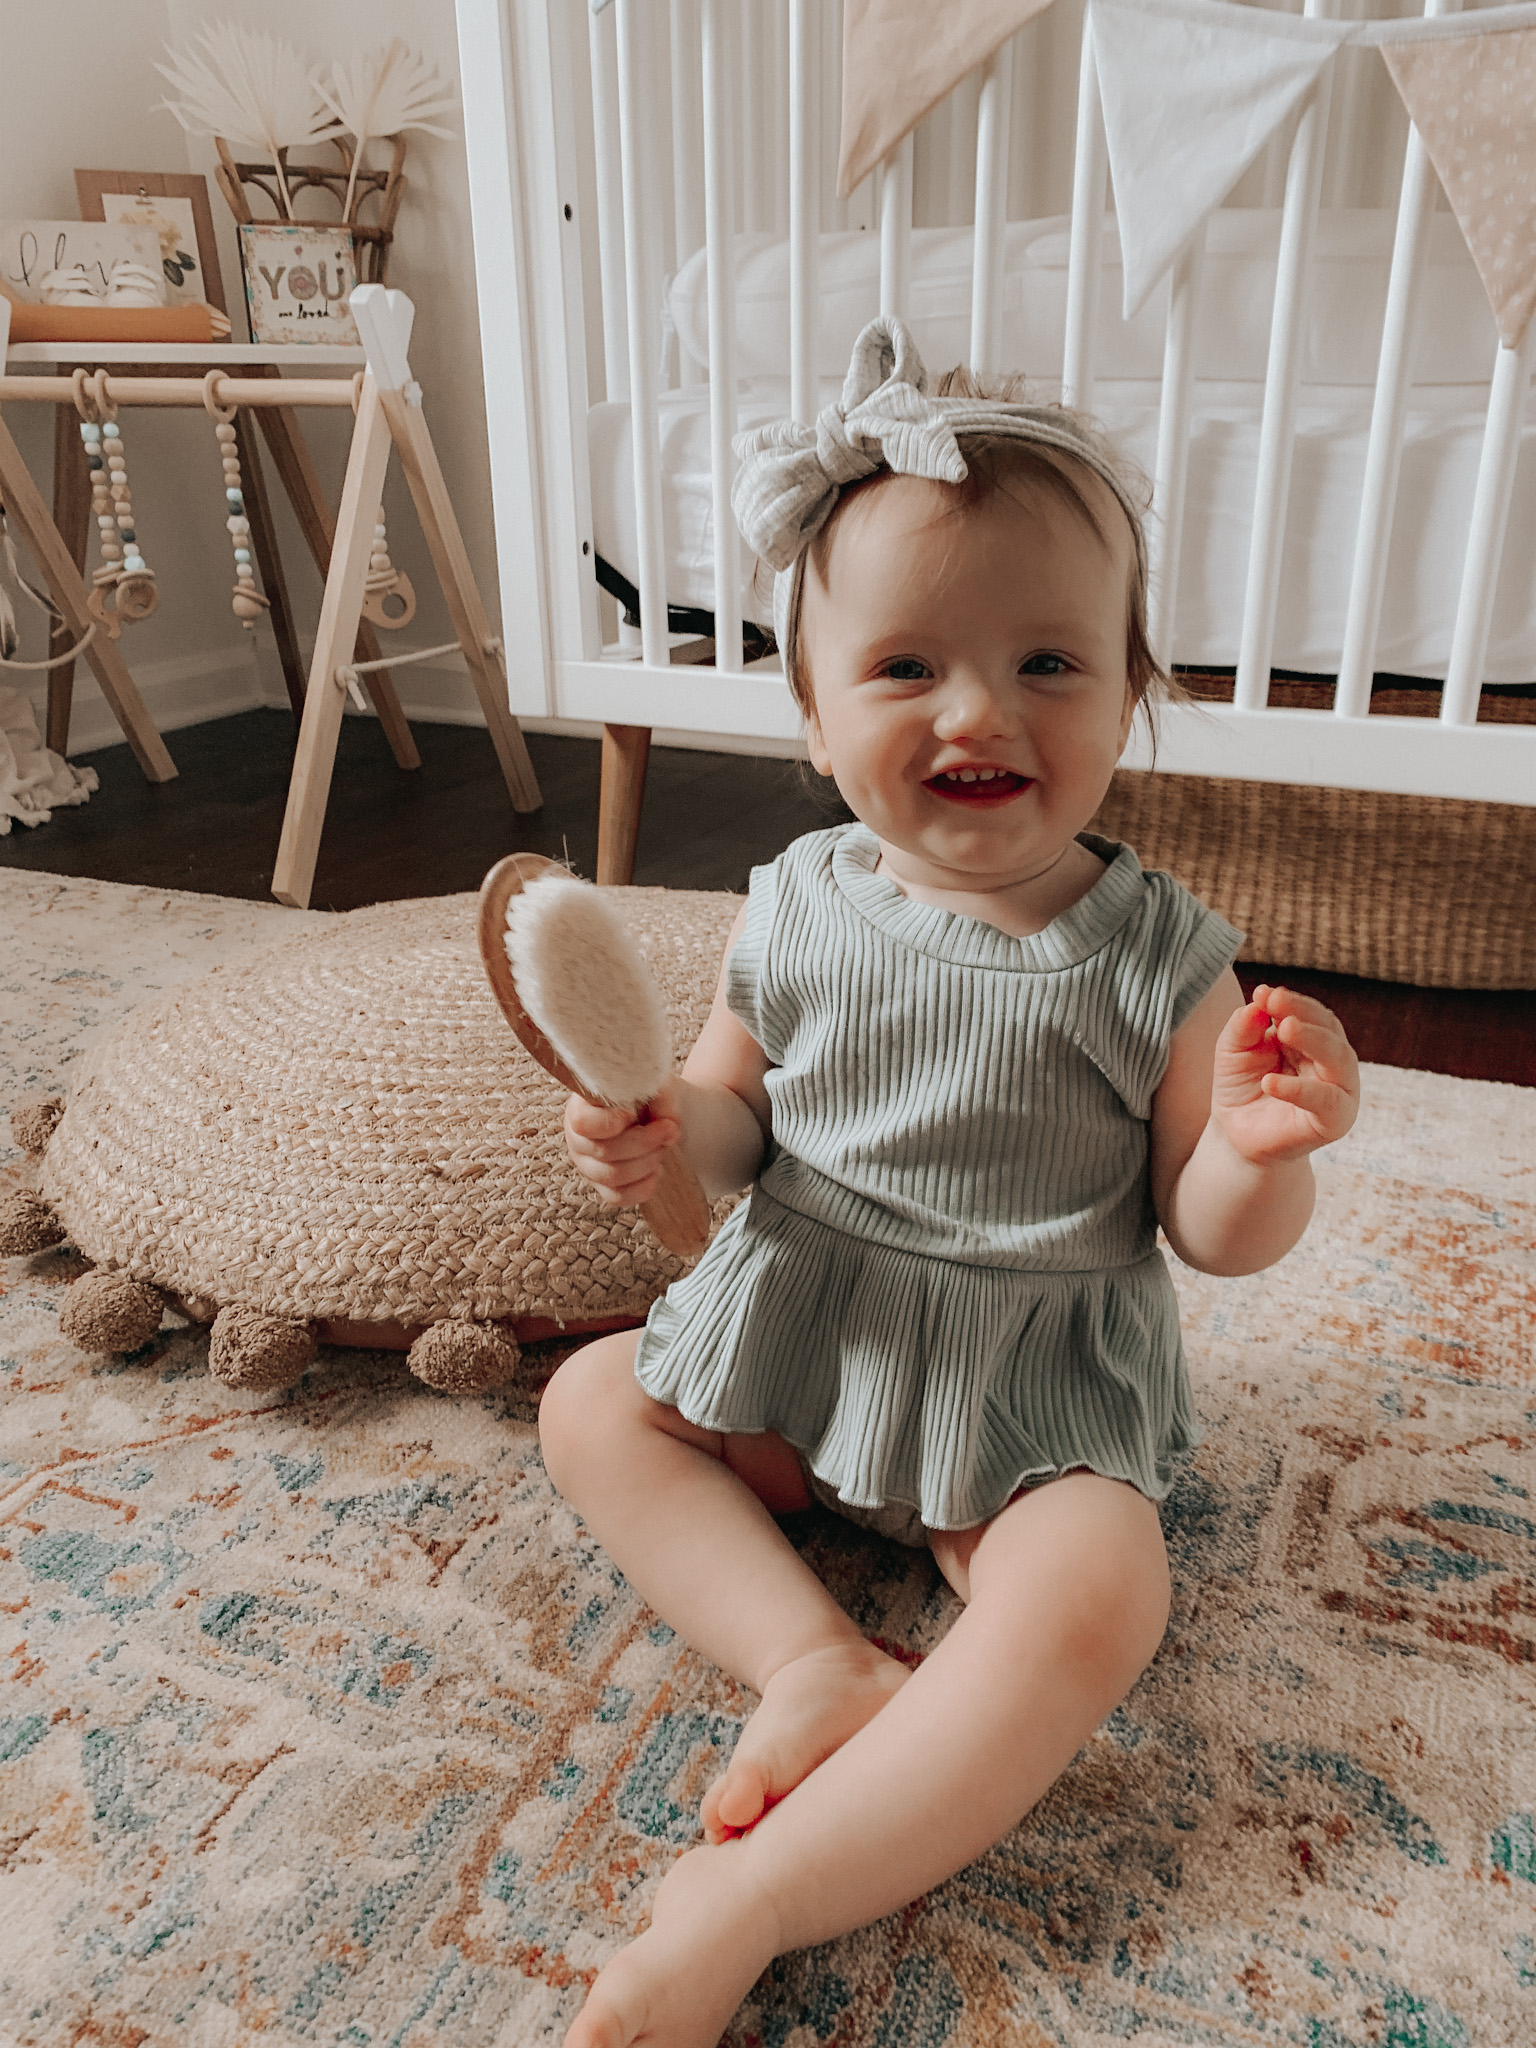 Baby Girl in Amazon Trendy Clothes